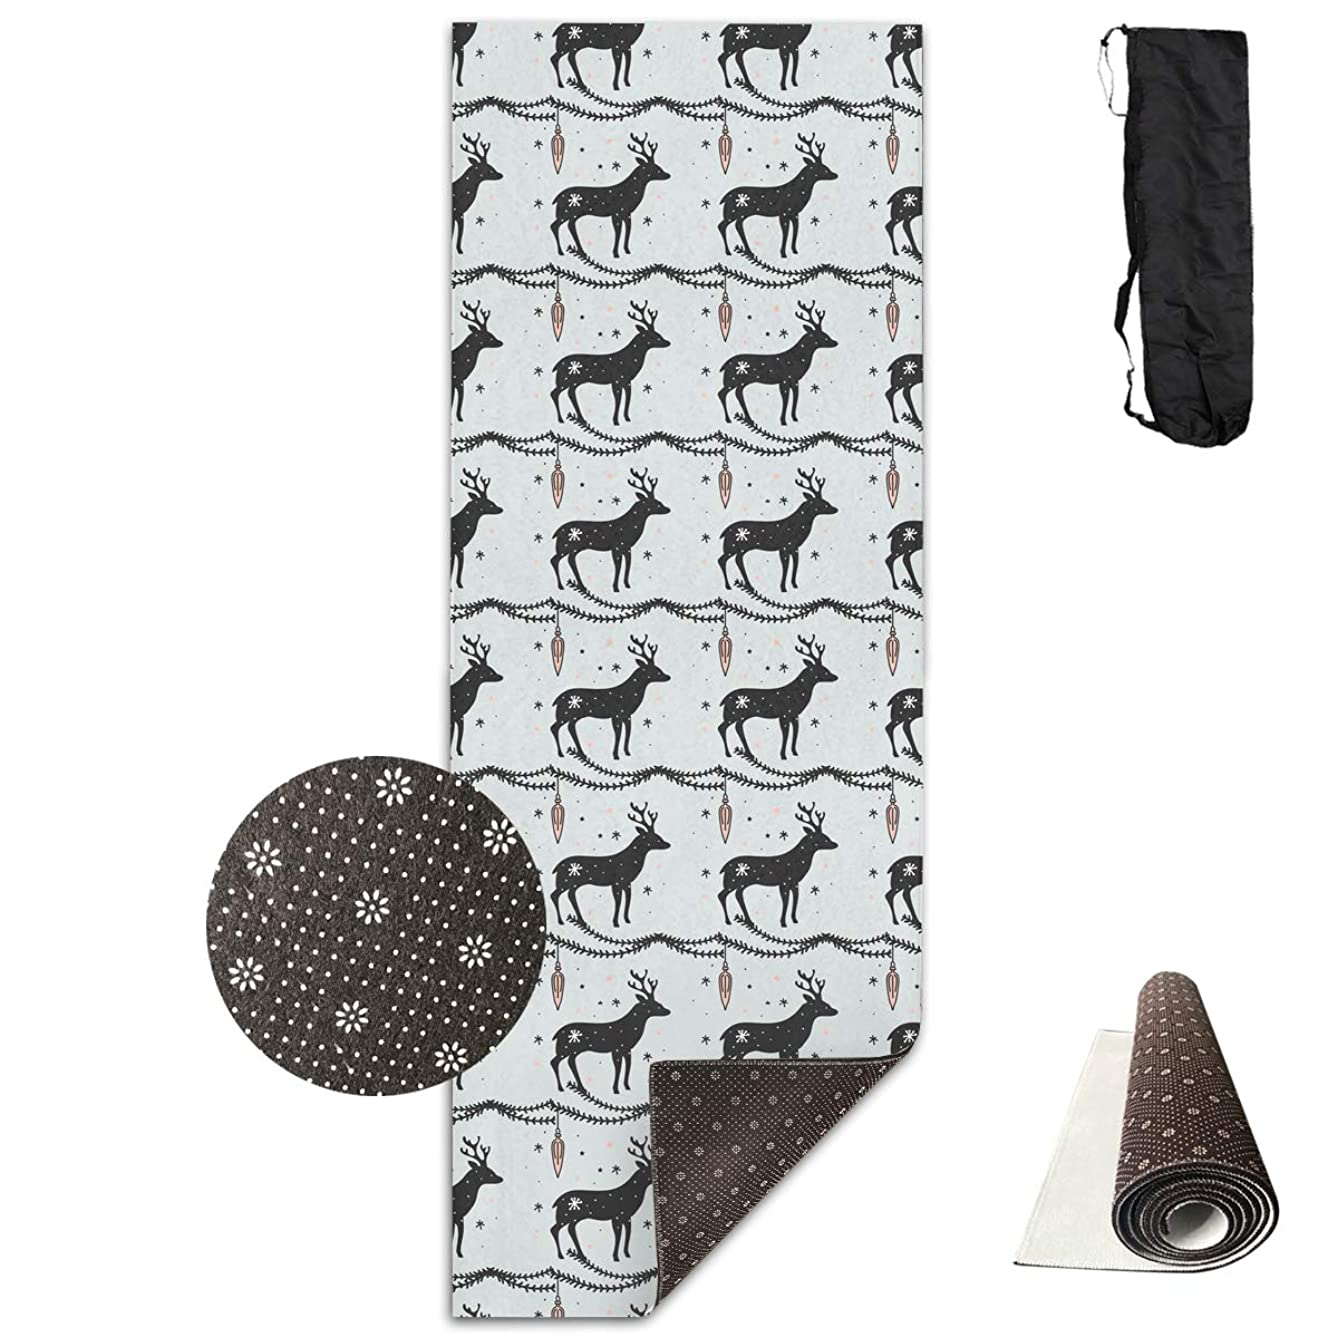 Unisex Fitness Yoga Mat Deer Christmas Pattern Unique Non-Slip Pattern Towels,Pilates Sports Paddle Board Yoga Exercise 24 X 71 Inches Durable Yoga Mats,All-Purpose